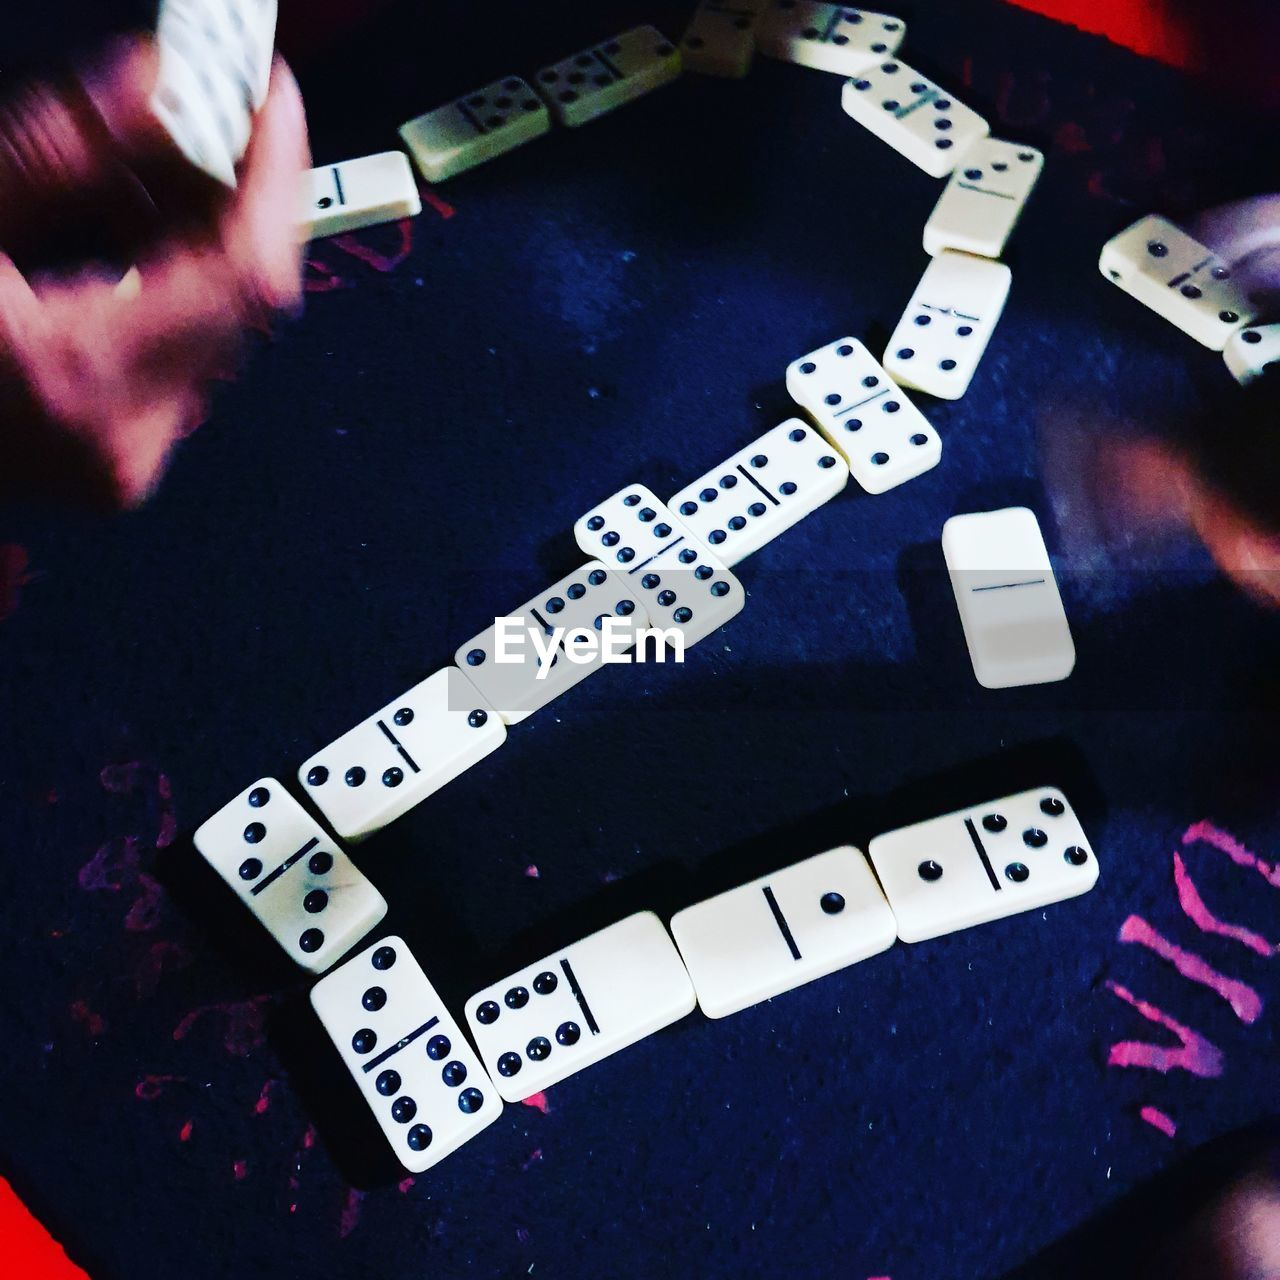 indoors, human hand, close-up, leisure games, table, real people, arts culture and entertainment, high angle view, human body part, gambling, leisure activity, one person, day